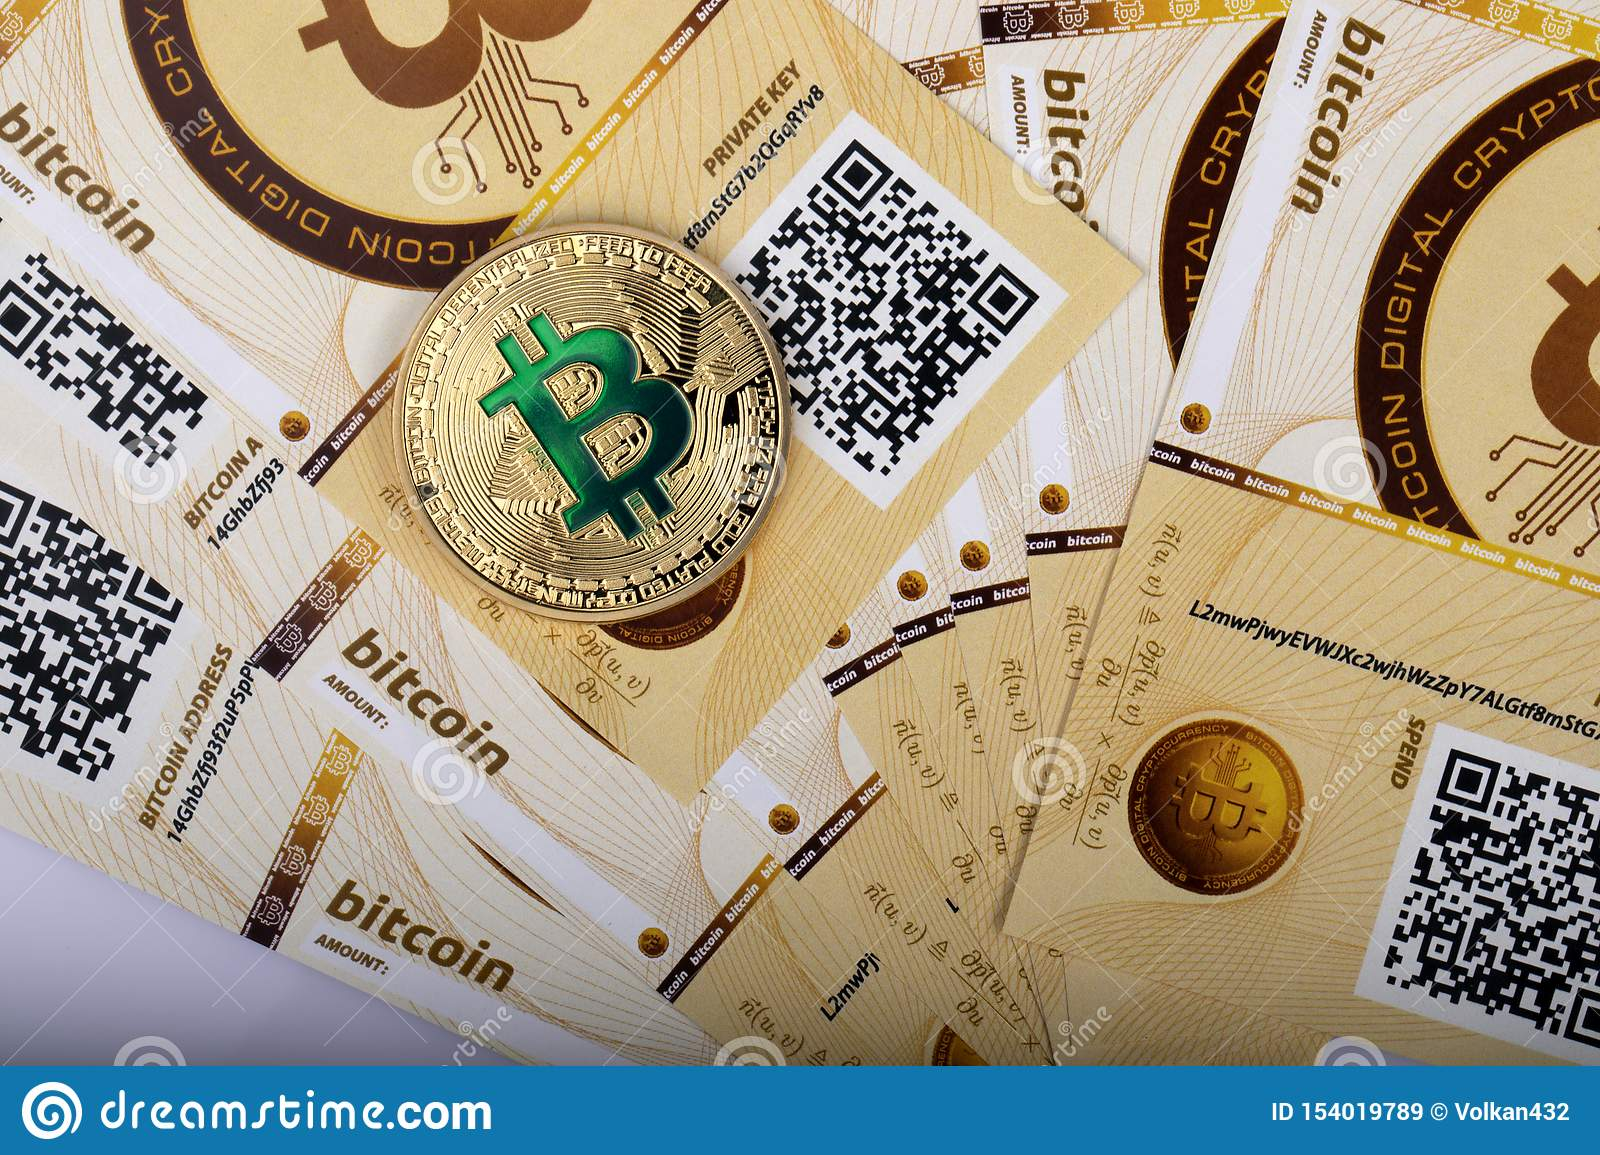 Walletbit bitcoins for sale arbitrage sports betting advice videos